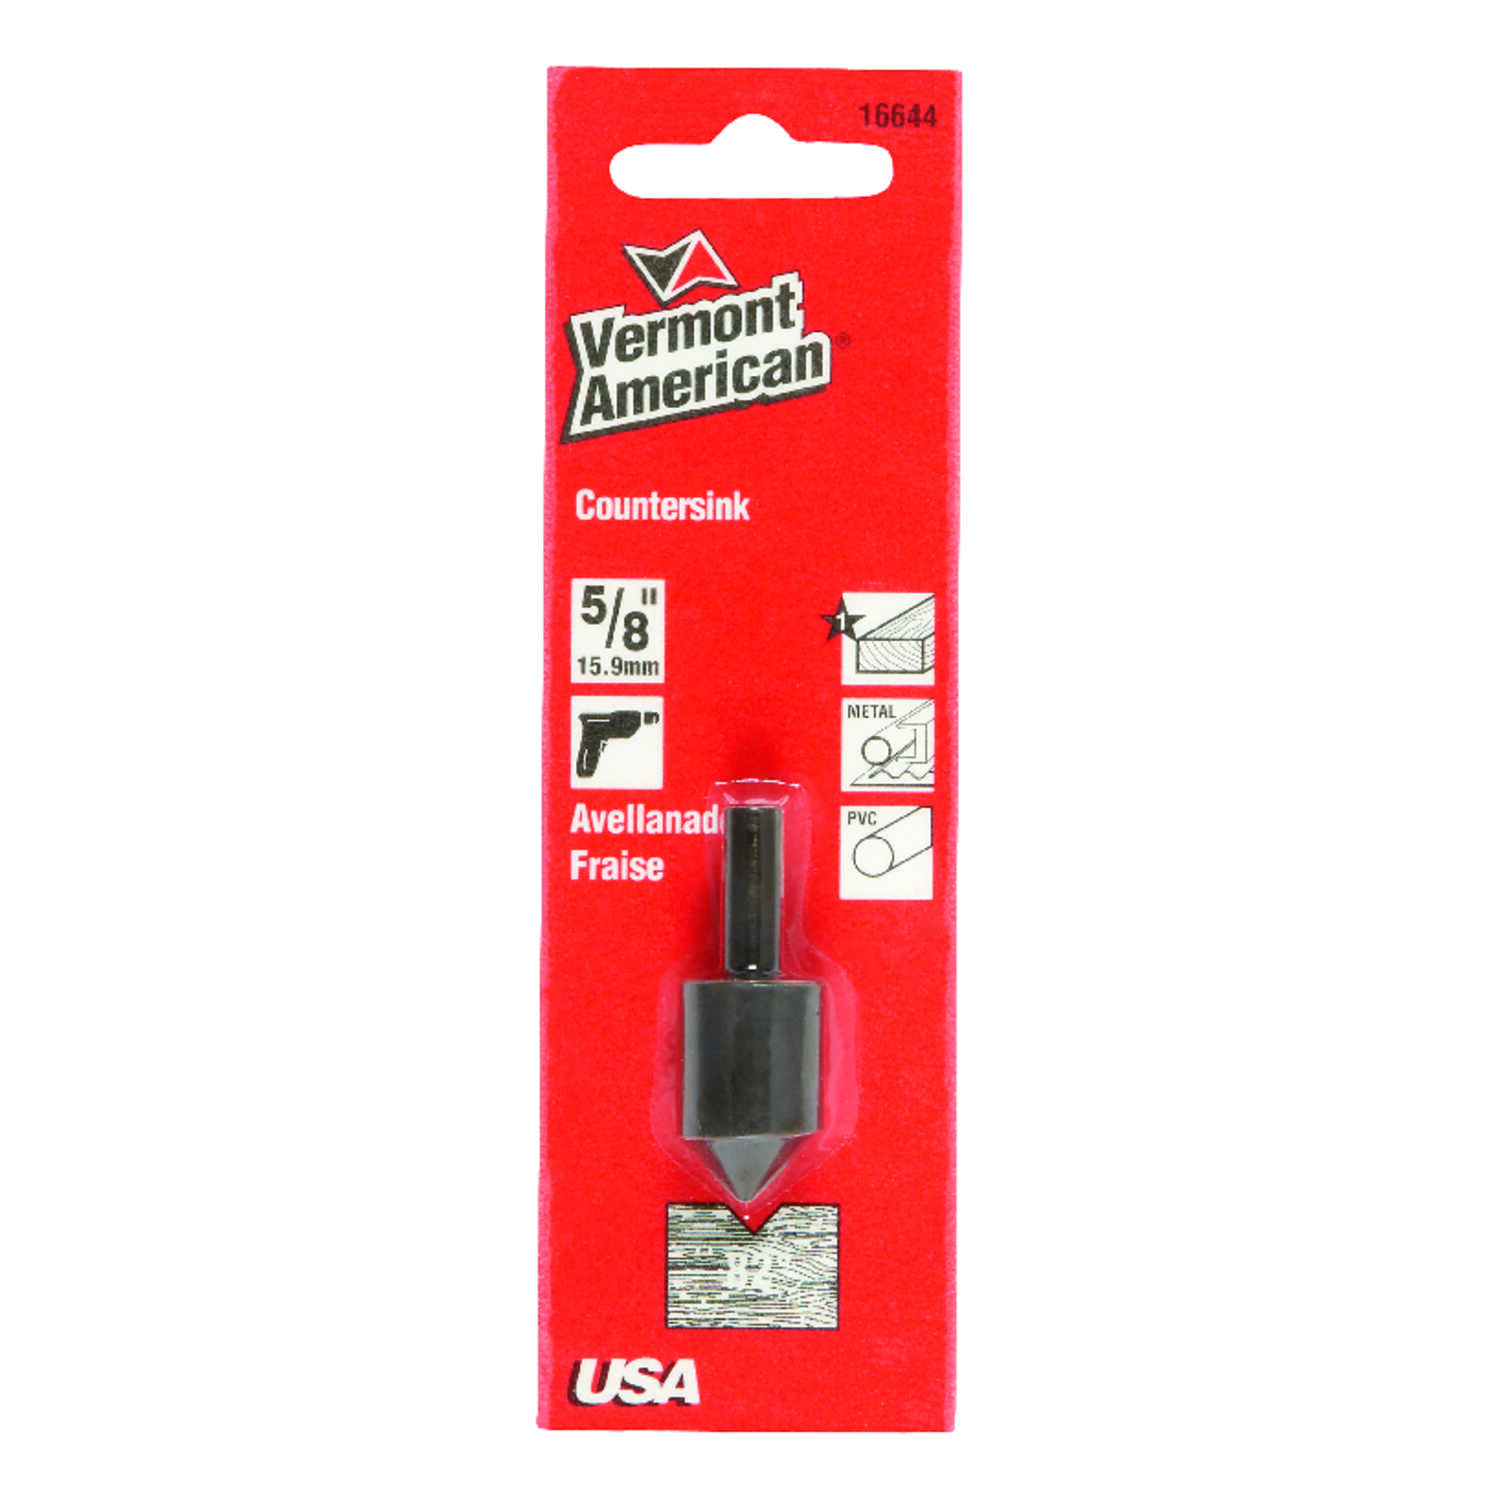 Vermont American  5/8 in. Dia. Tool Steel  Countersink  1/4 in. Round Shank  1 pc.